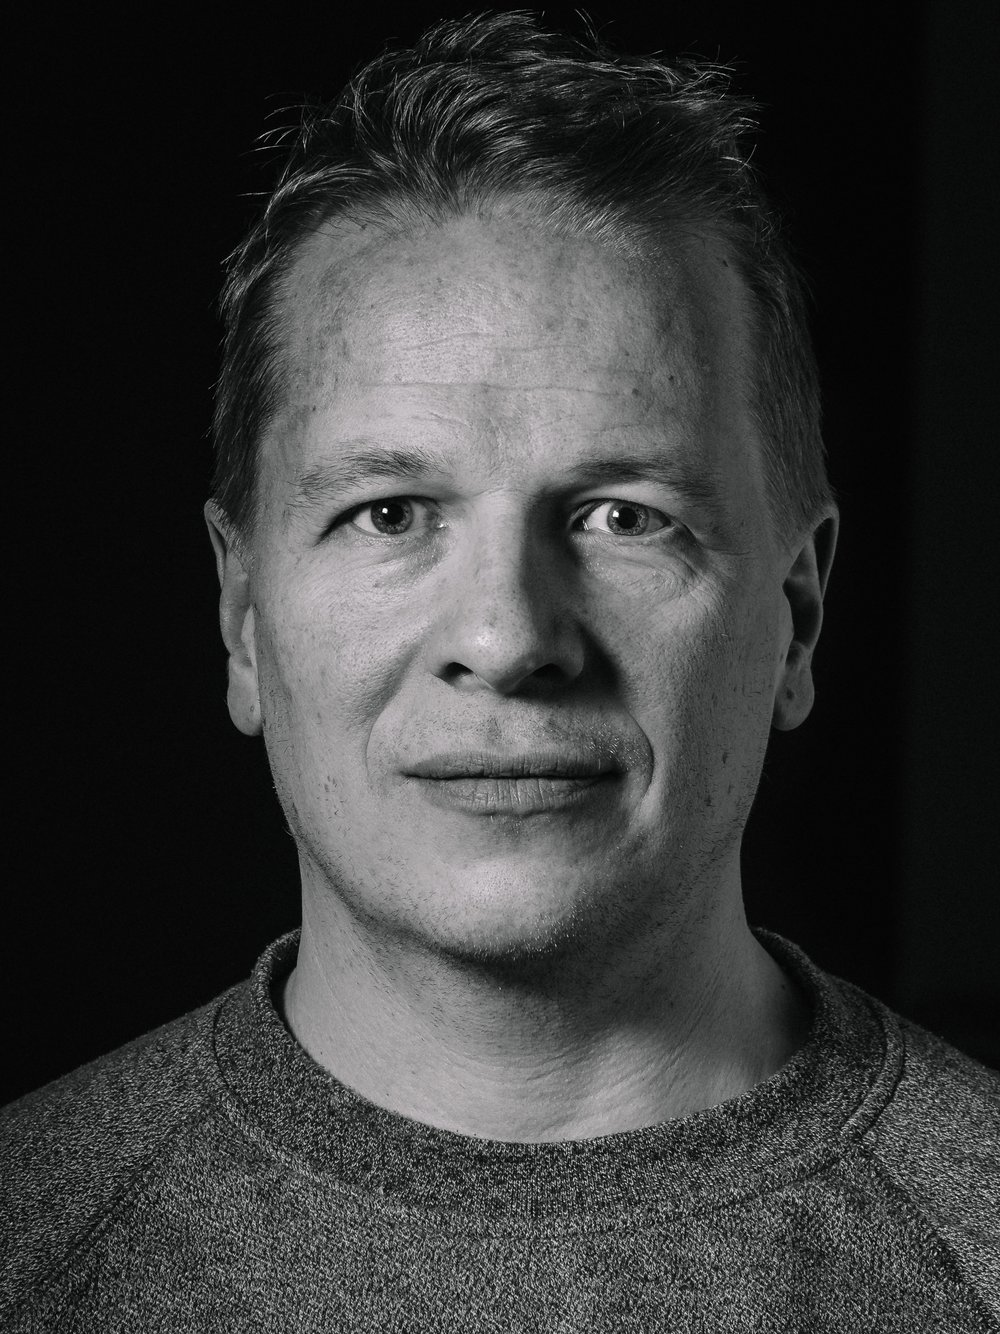 Petteri Koponen Executive Chairman, investor and chairman of the board. Founding partner at Lifeline Ventures. First investor and the chairman of Supercell until Softbanks acquisition. Serial entrepreneur whose latest startup Jaiku was acquired by Google. Technical Physics at Aalto University.